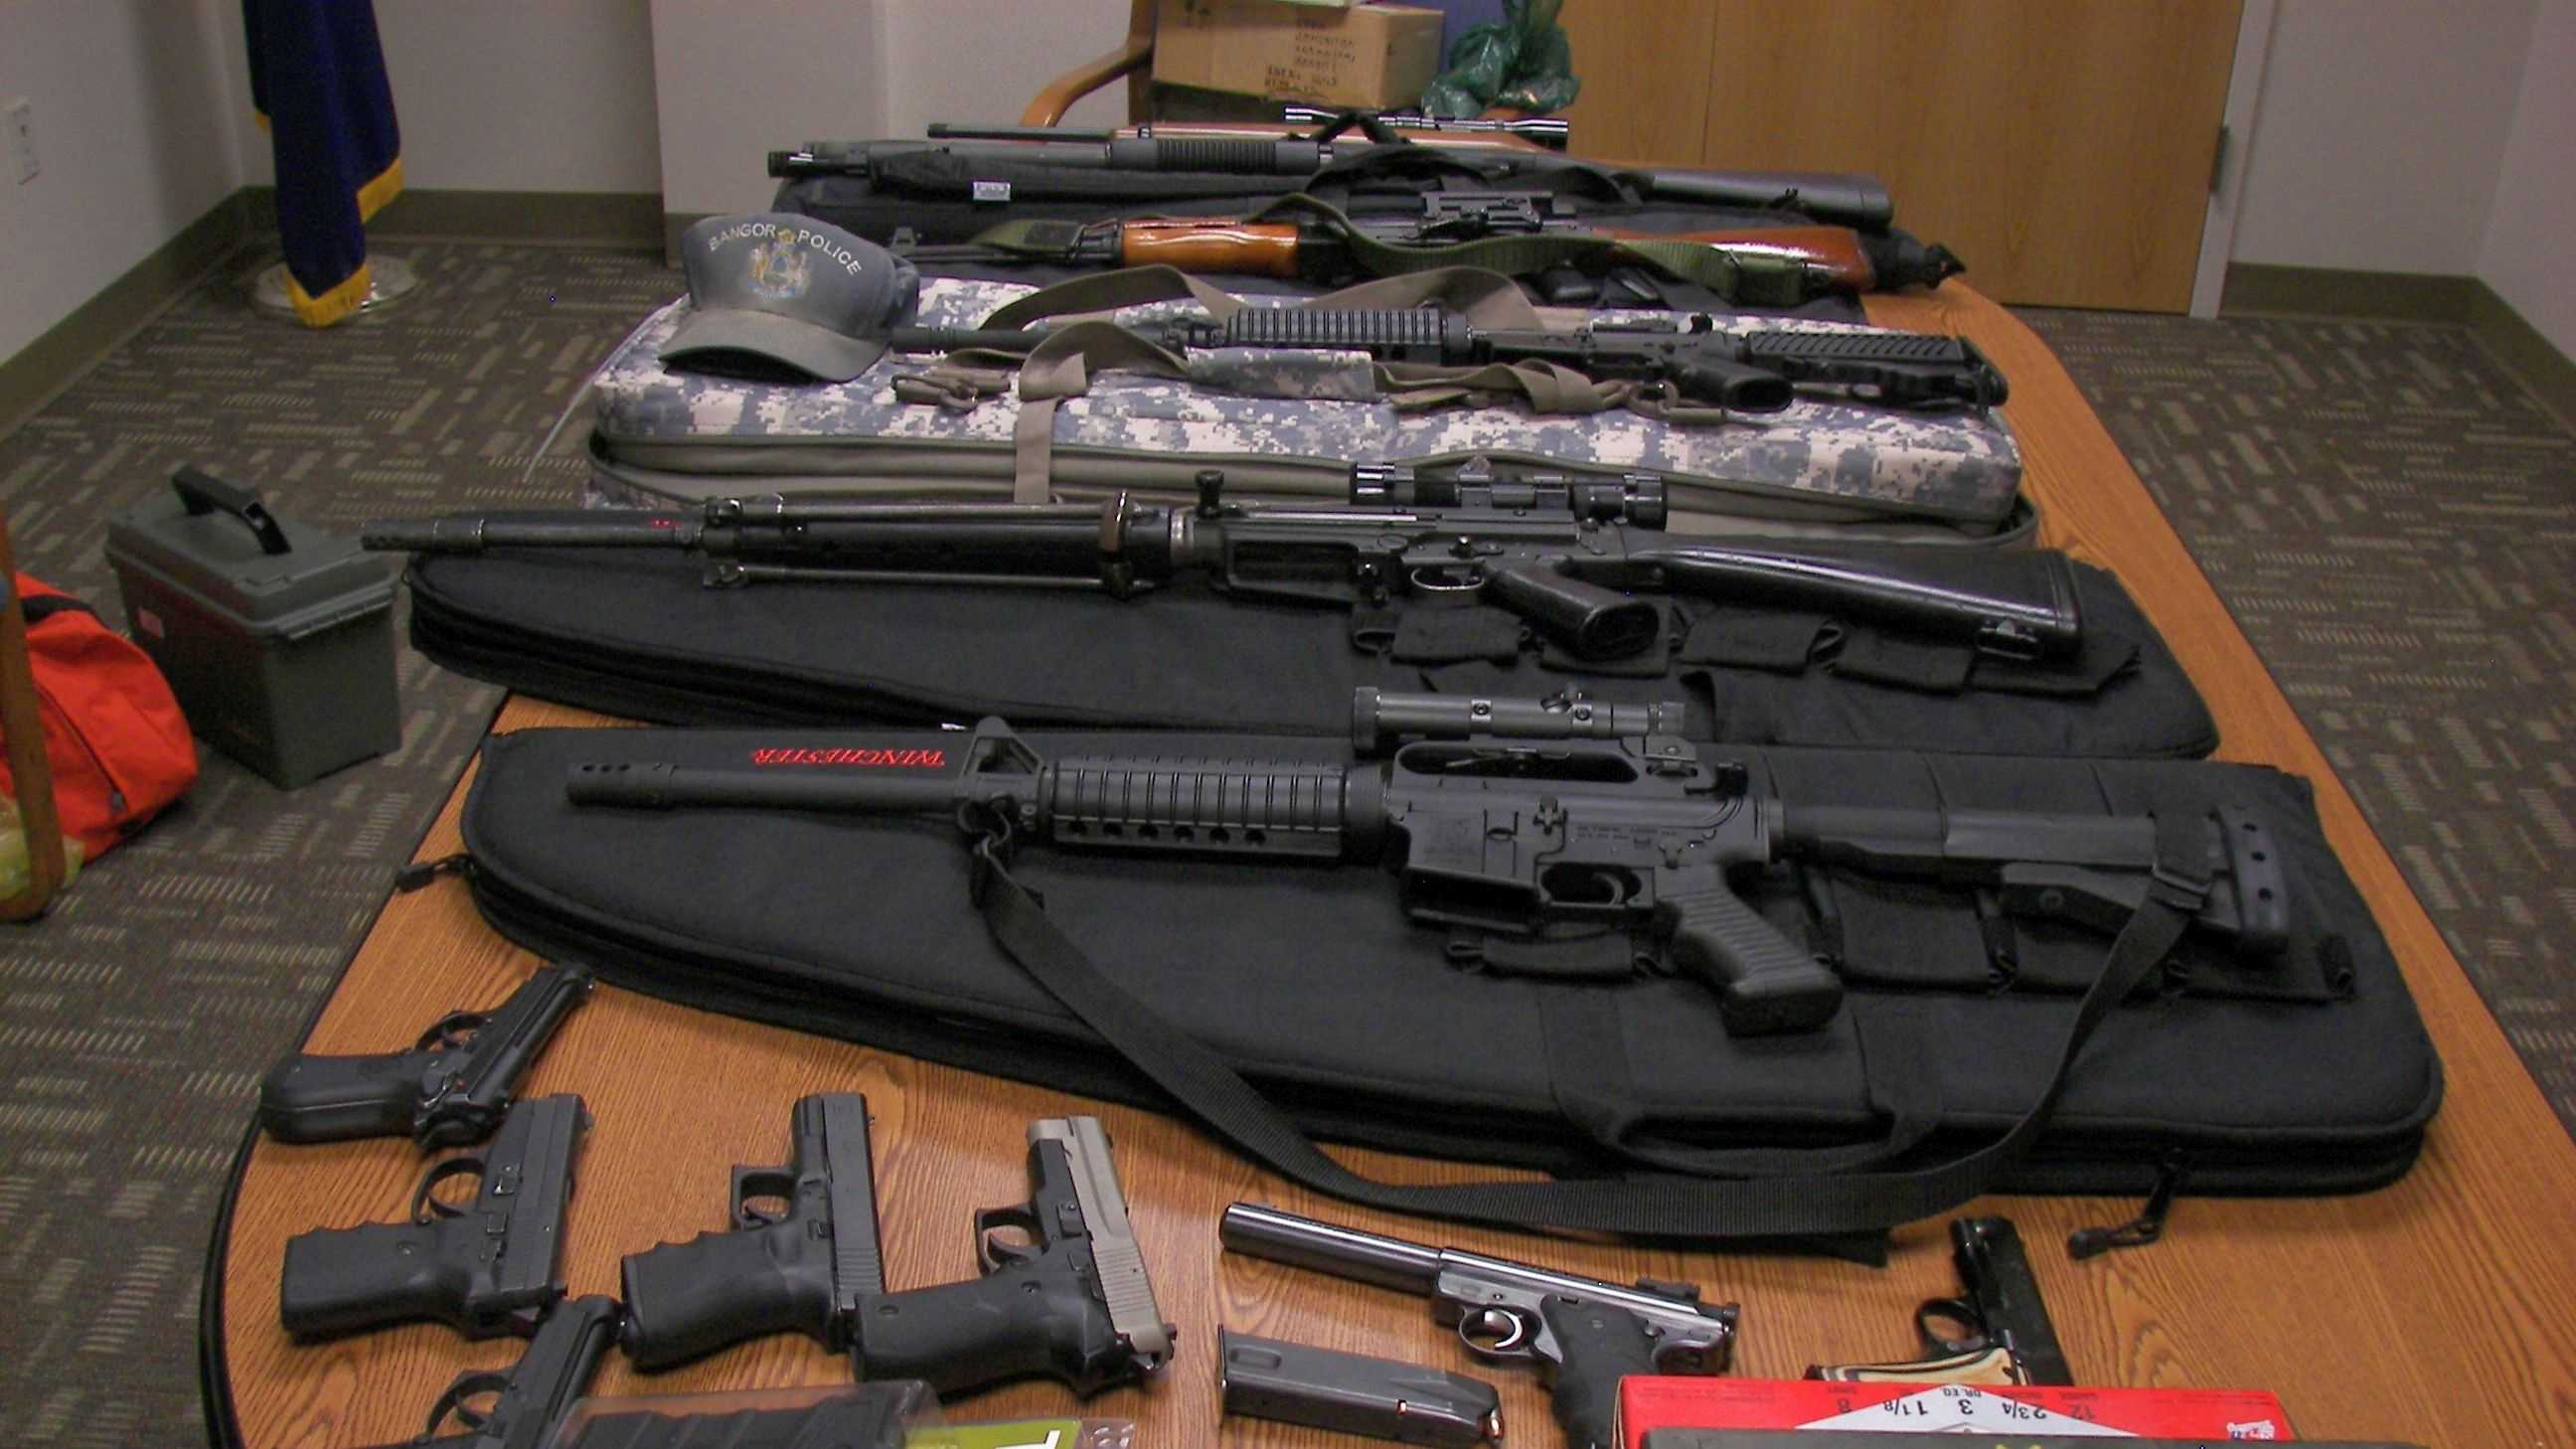 This is the arsenal of weapons police say they seized from Timothy Courtois.